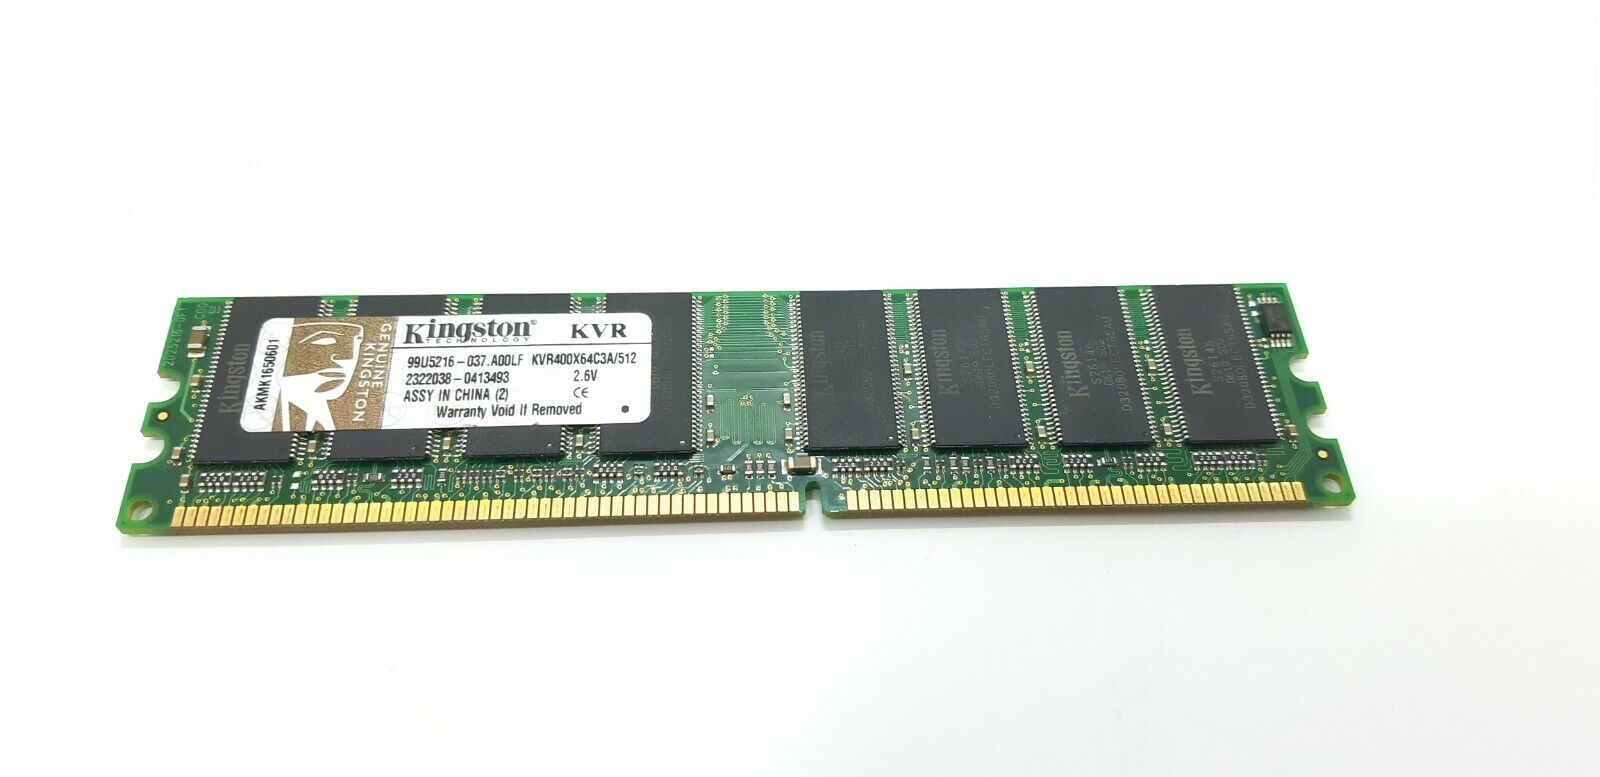 Primary image for Kingston PC3200 (DDR-400) 512MB DIMM 400 MHz PC-3200 DDR Memory KVR400X64C3A/512